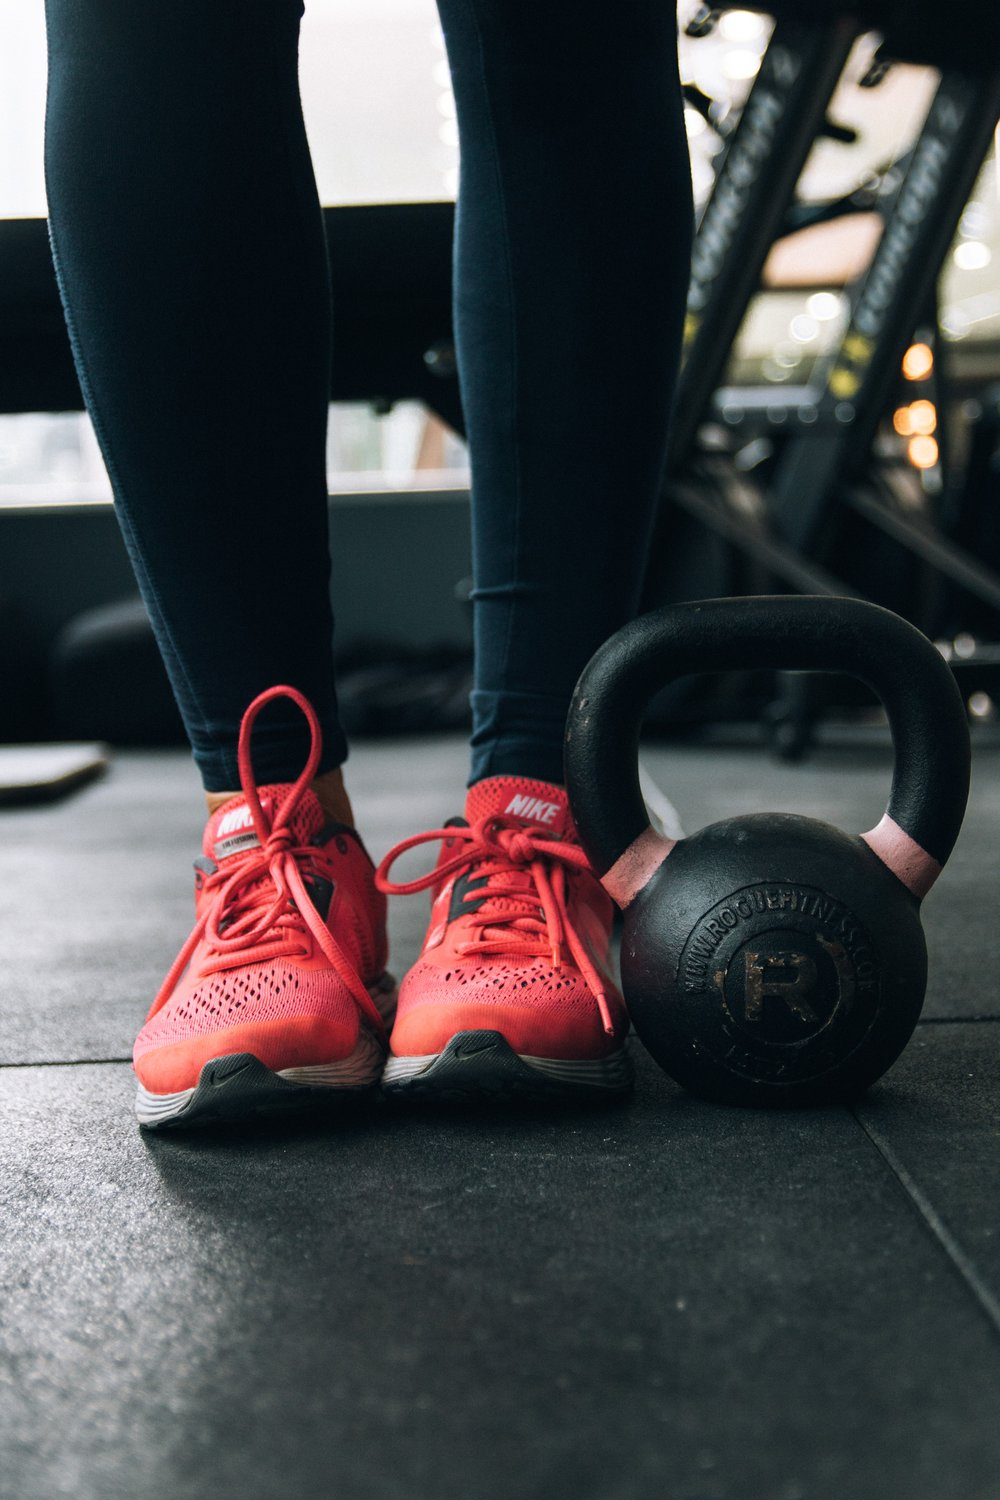 kettlebell and shoes.jpg